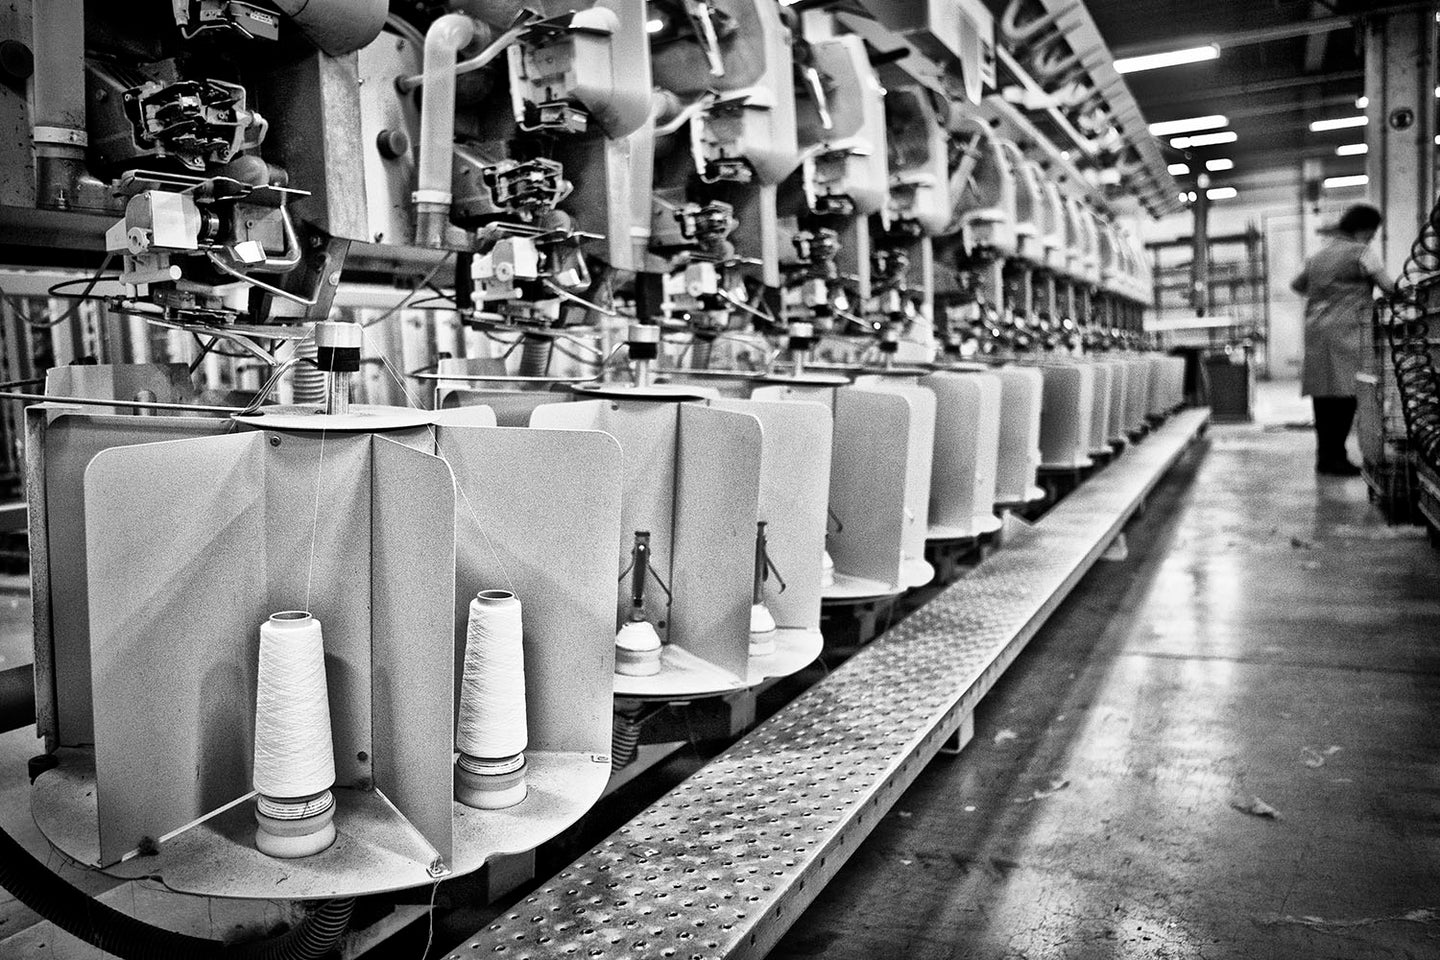 ISE - CARBON NEUTRAL ORGANIC FACTORY FABRIC MILL IN BELGIUM PRODUCING BELGIAN LINEN BED SHEETS AND DUVET COVERS